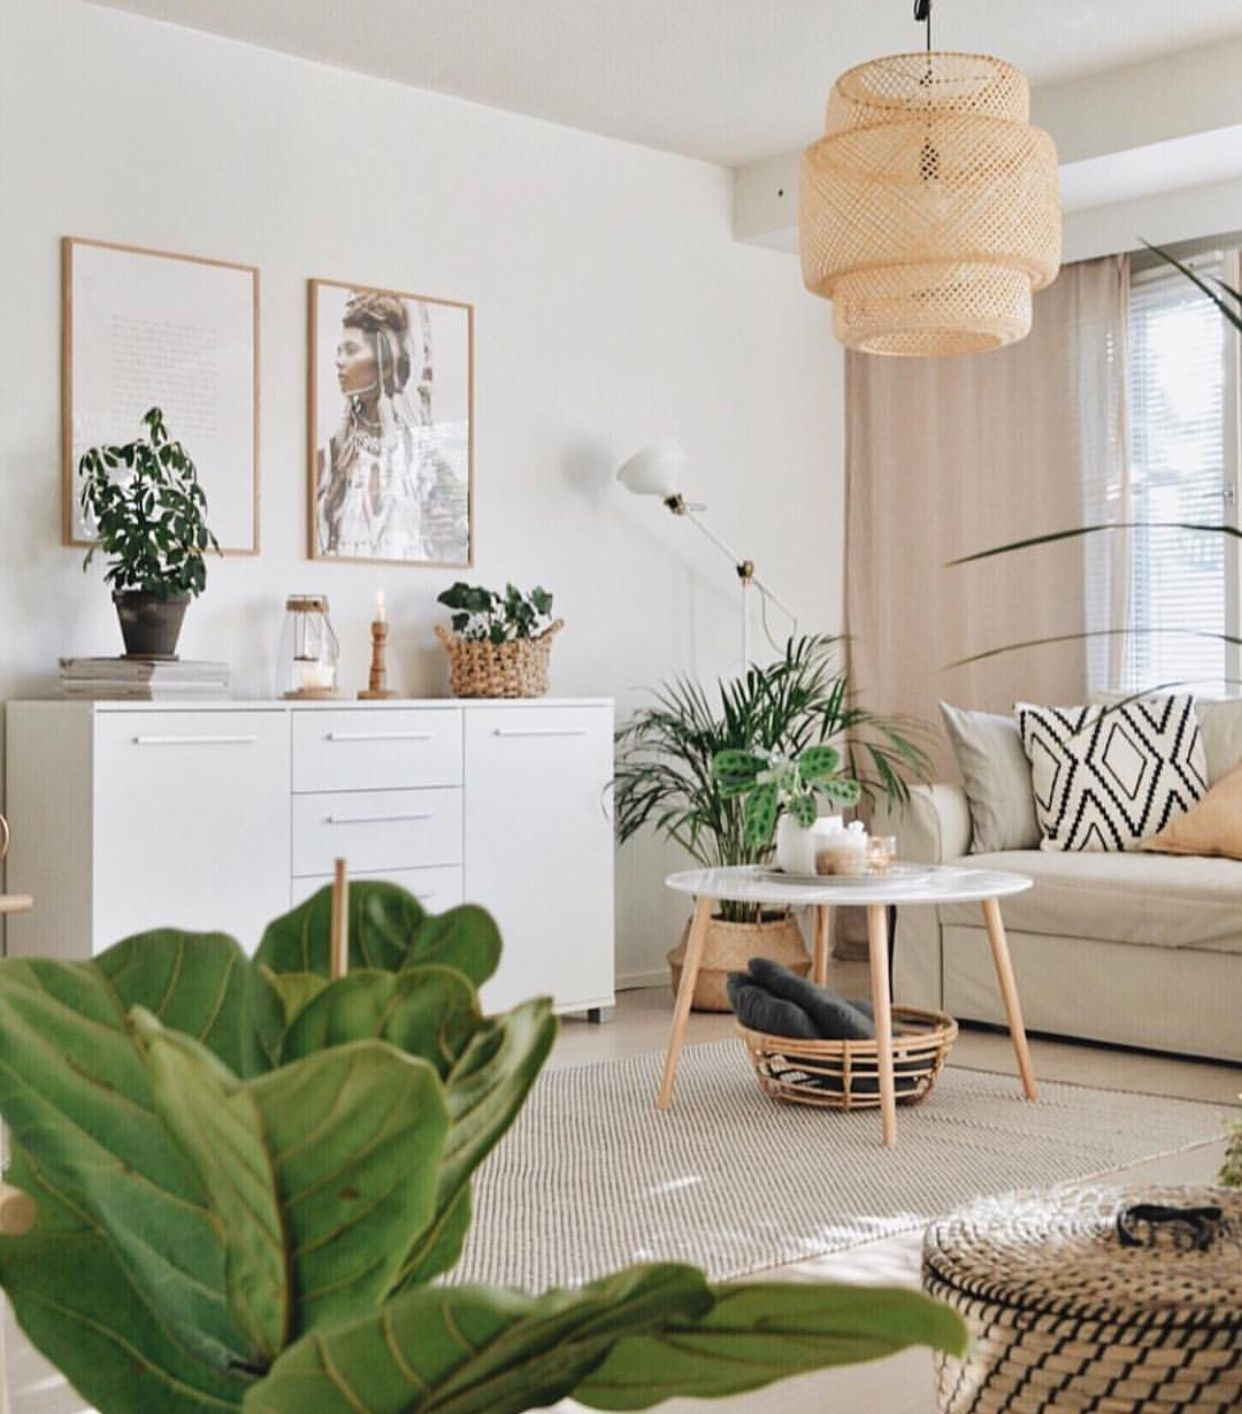 Living Room Home Decor House Decoration Bohemian Chic Apartment Therapy Small Apartment Therapy Small Spaces Living Room Green Apartment Living Room